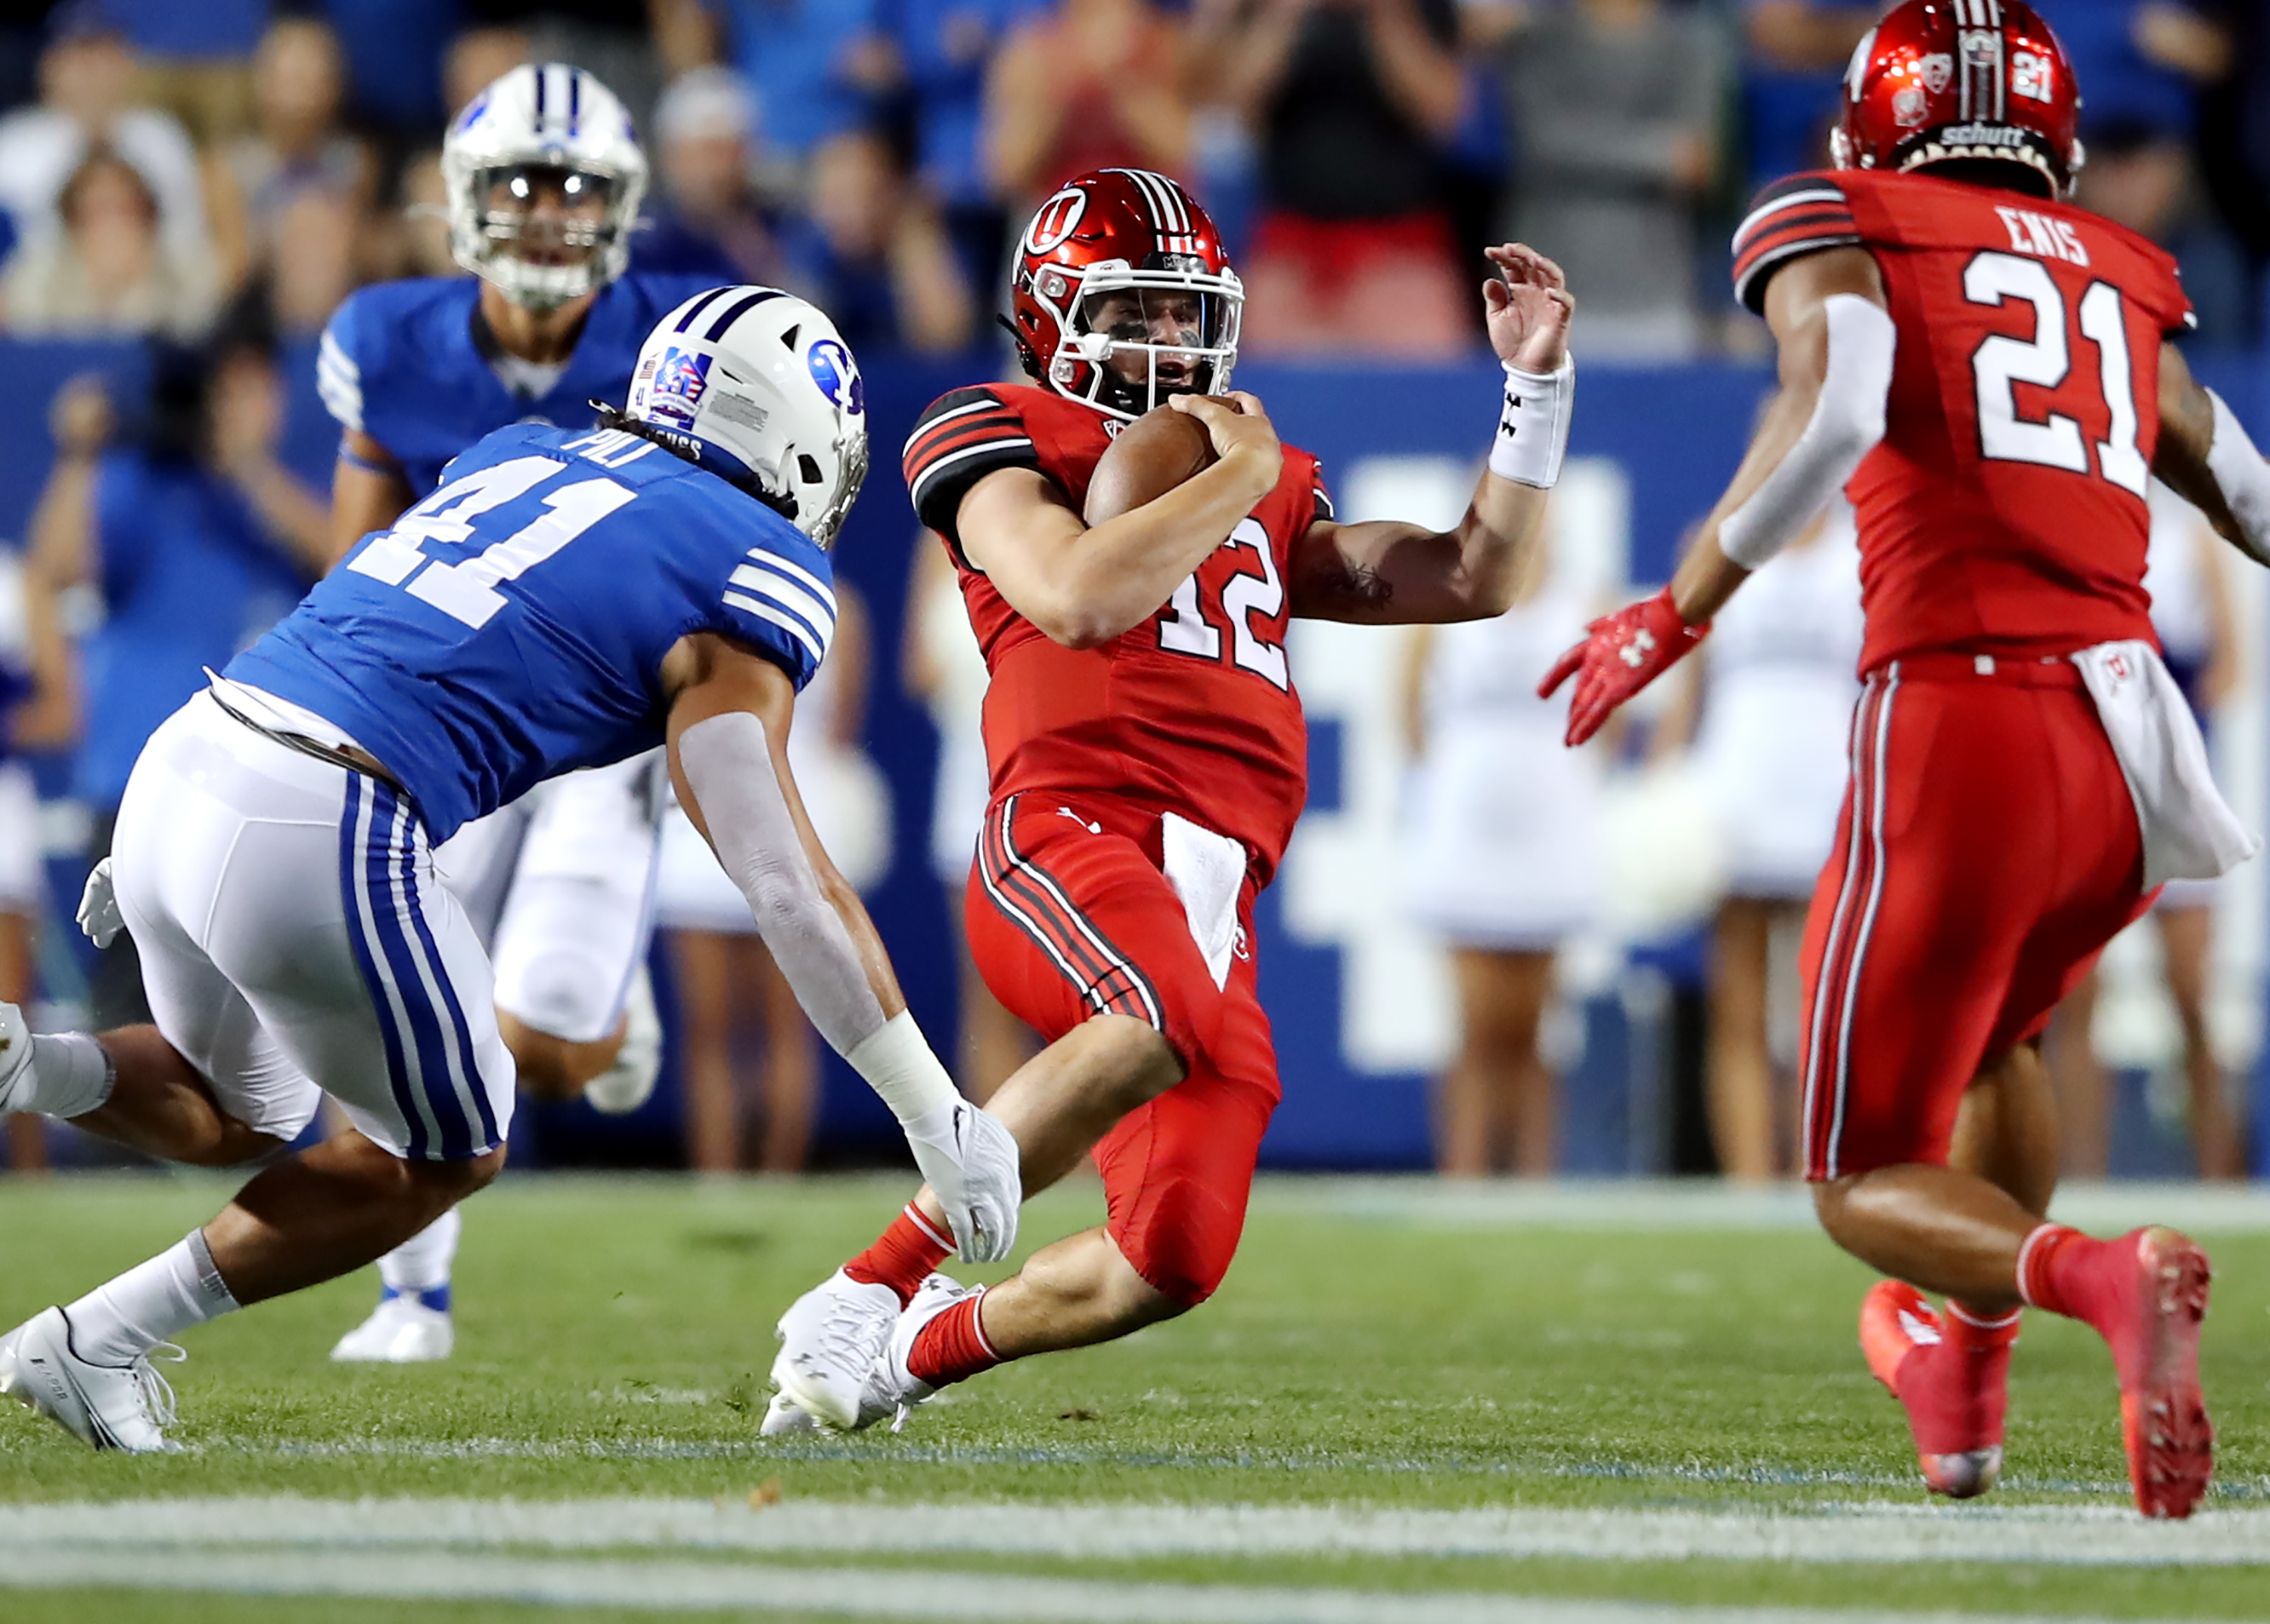 Utah Utes quarterback Charlie Brewer, wearing a red helmet and red jersey, slides down with Brigham Young Cougars linebacker Keenan Pili, wearing a white helmet and royal blue jersey